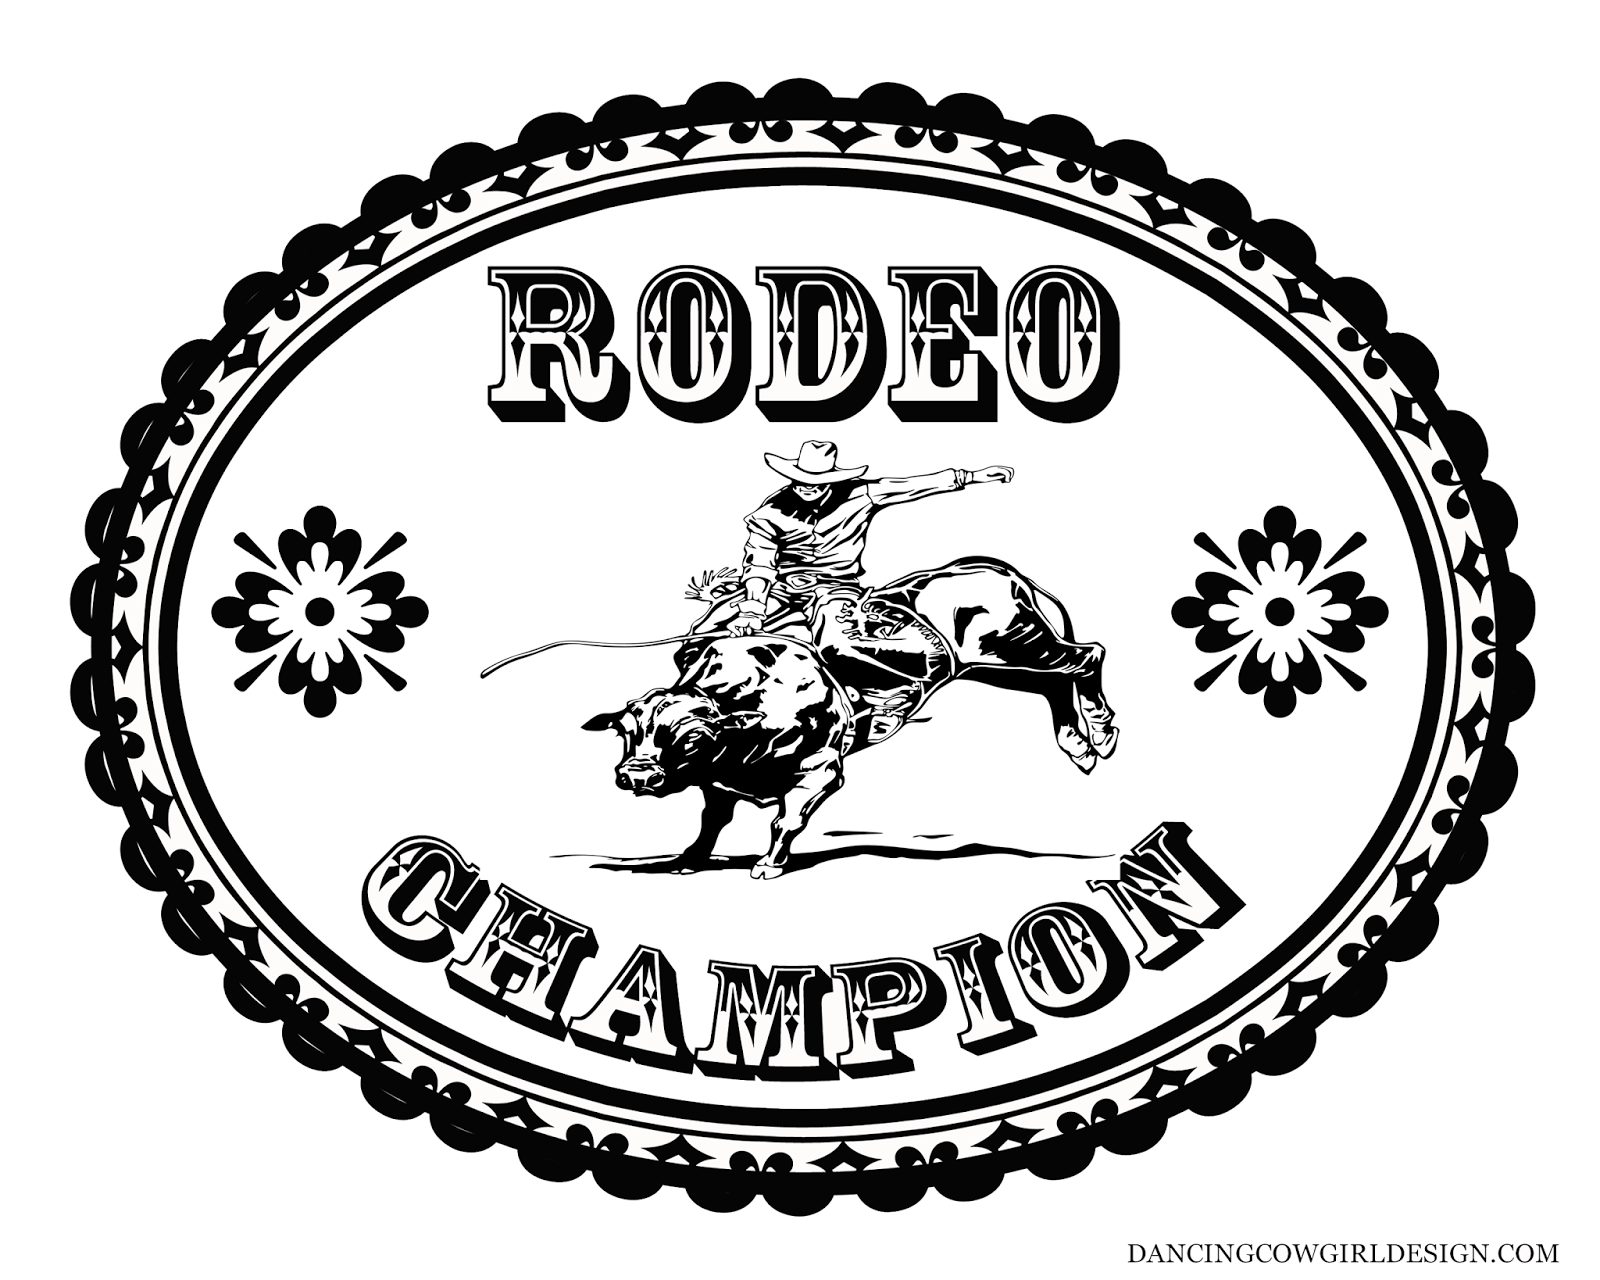 bull rider belt buckle coloring page - Rodeo Coloring Pages